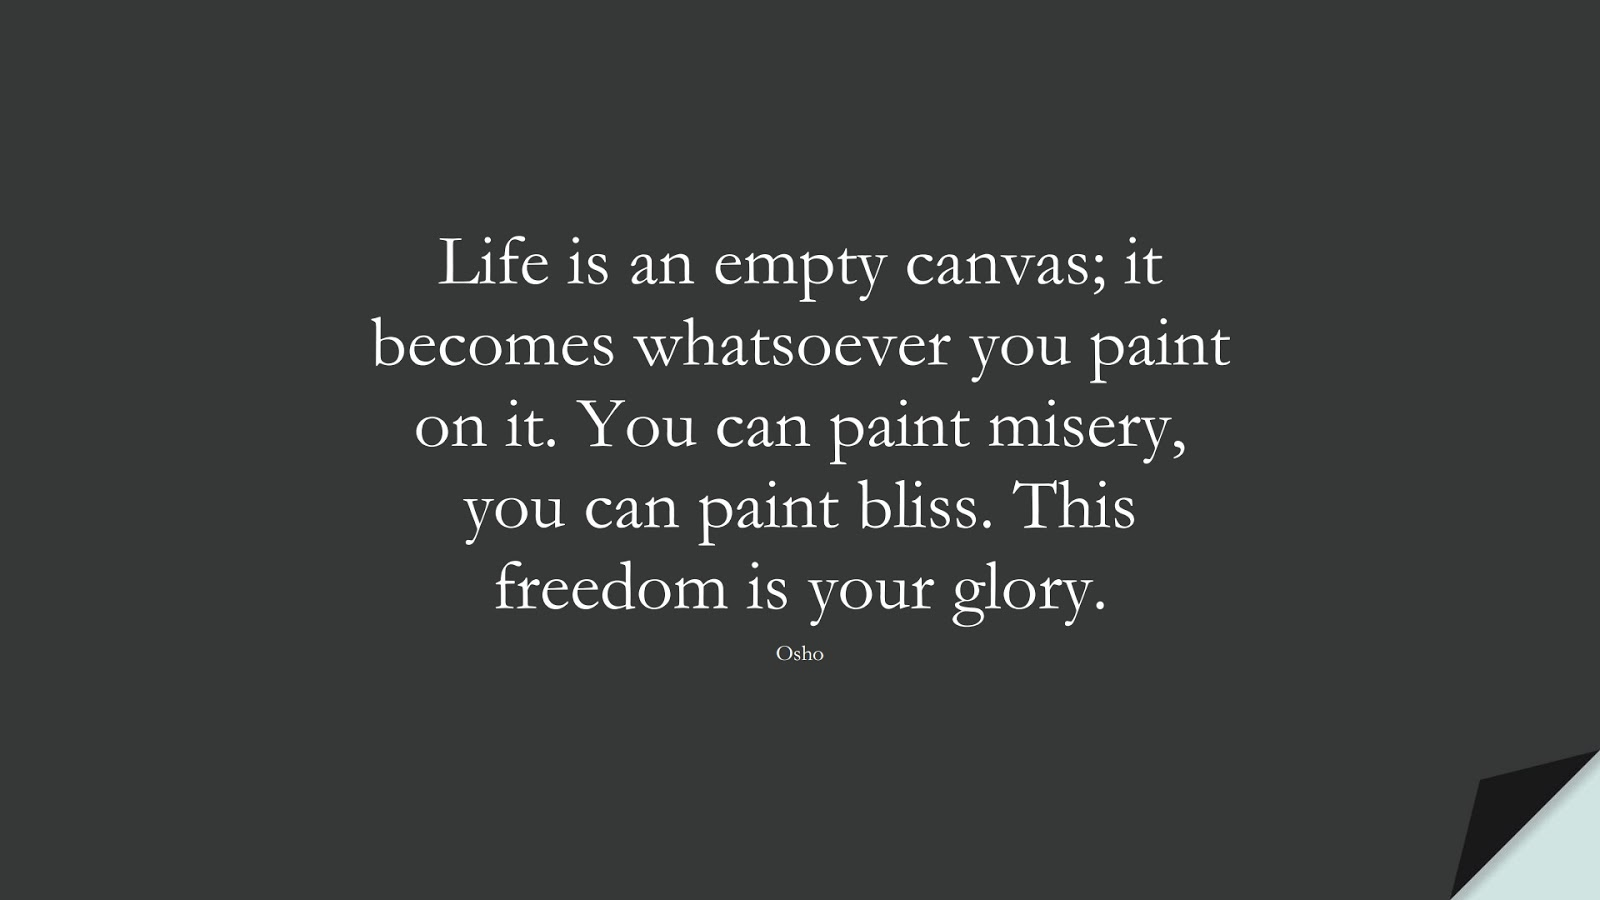 Life is an empty canvas; it becomes whatsoever you paint on it. You can paint misery, you can paint bliss. This freedom is your glory. (Osho);  #DepressionQuotes